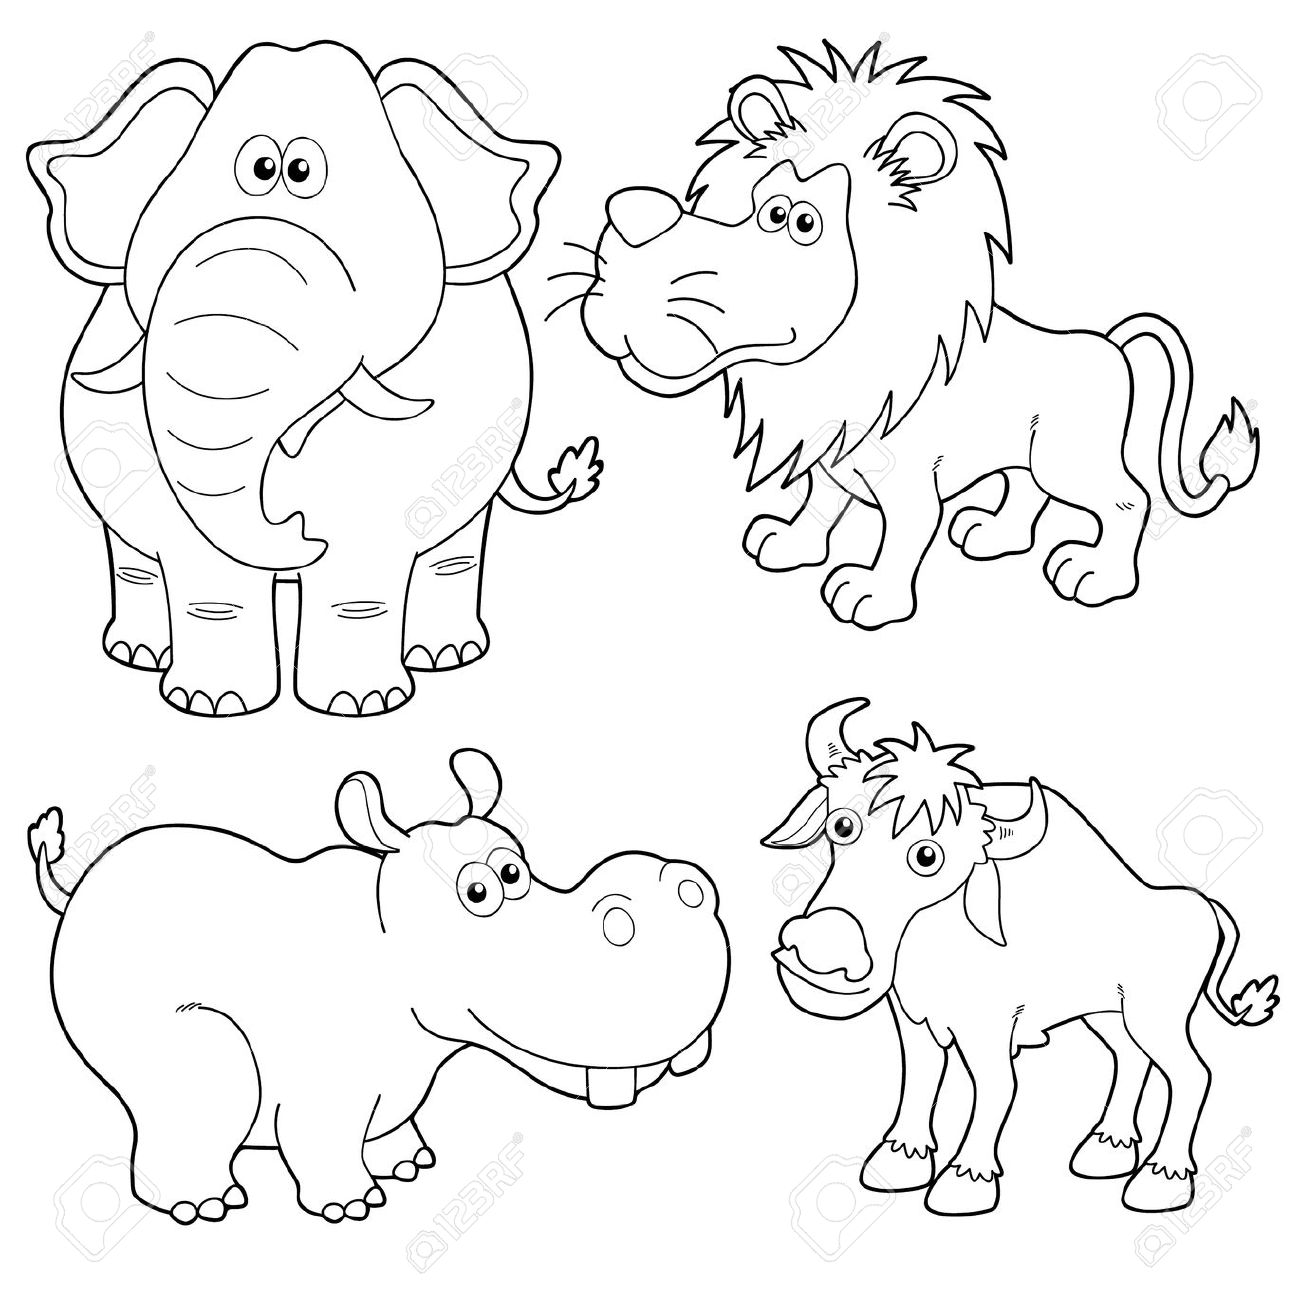 Line Drawings Of Cartoon Animals : Realistic animals drawing at getdrawings free for